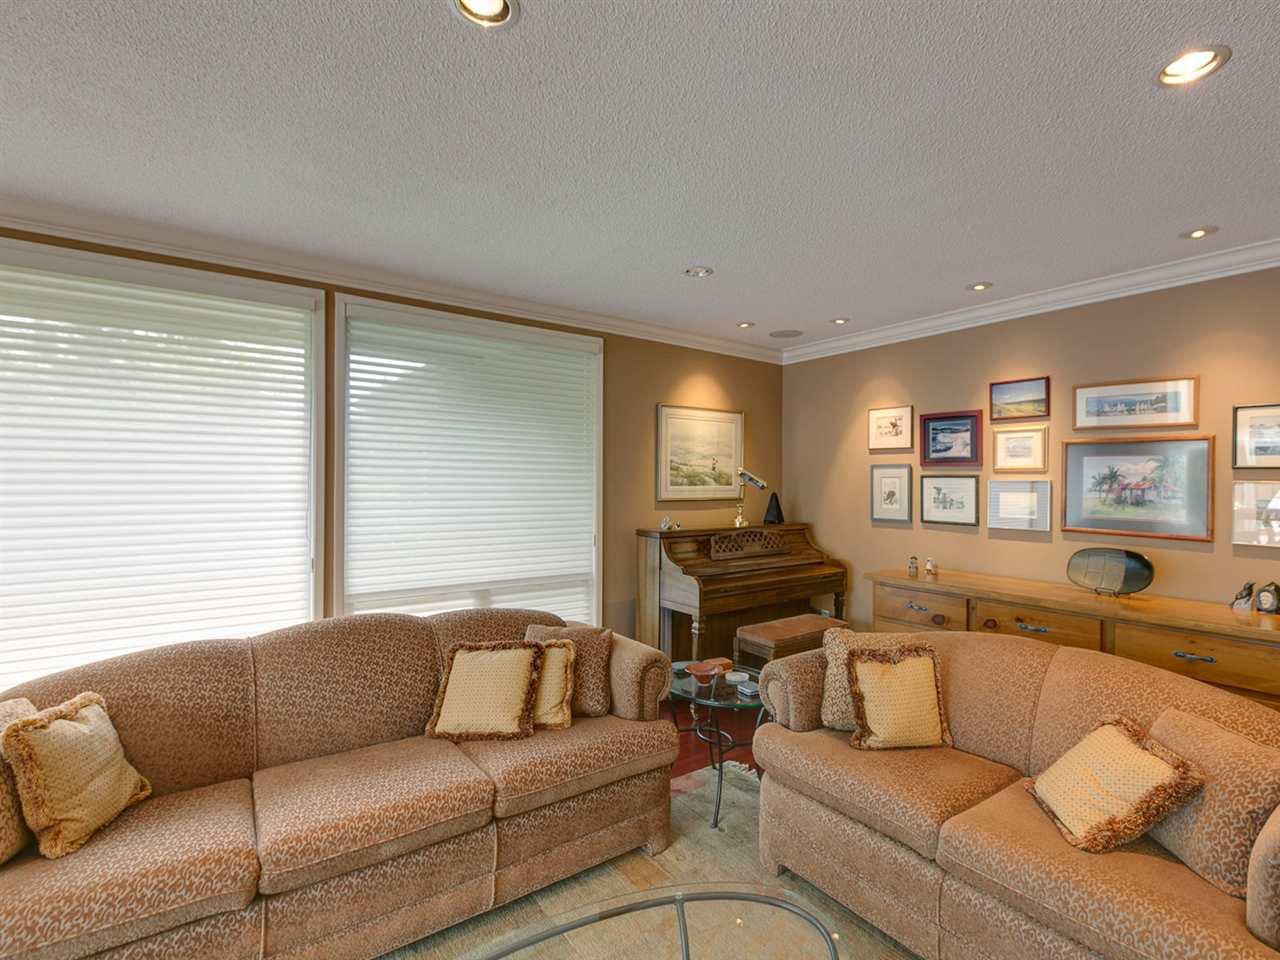 Photo 11: Photos: 1959 ALDERLYNN Drive in North Vancouver: Westlynn House for sale : MLS®# R2094199